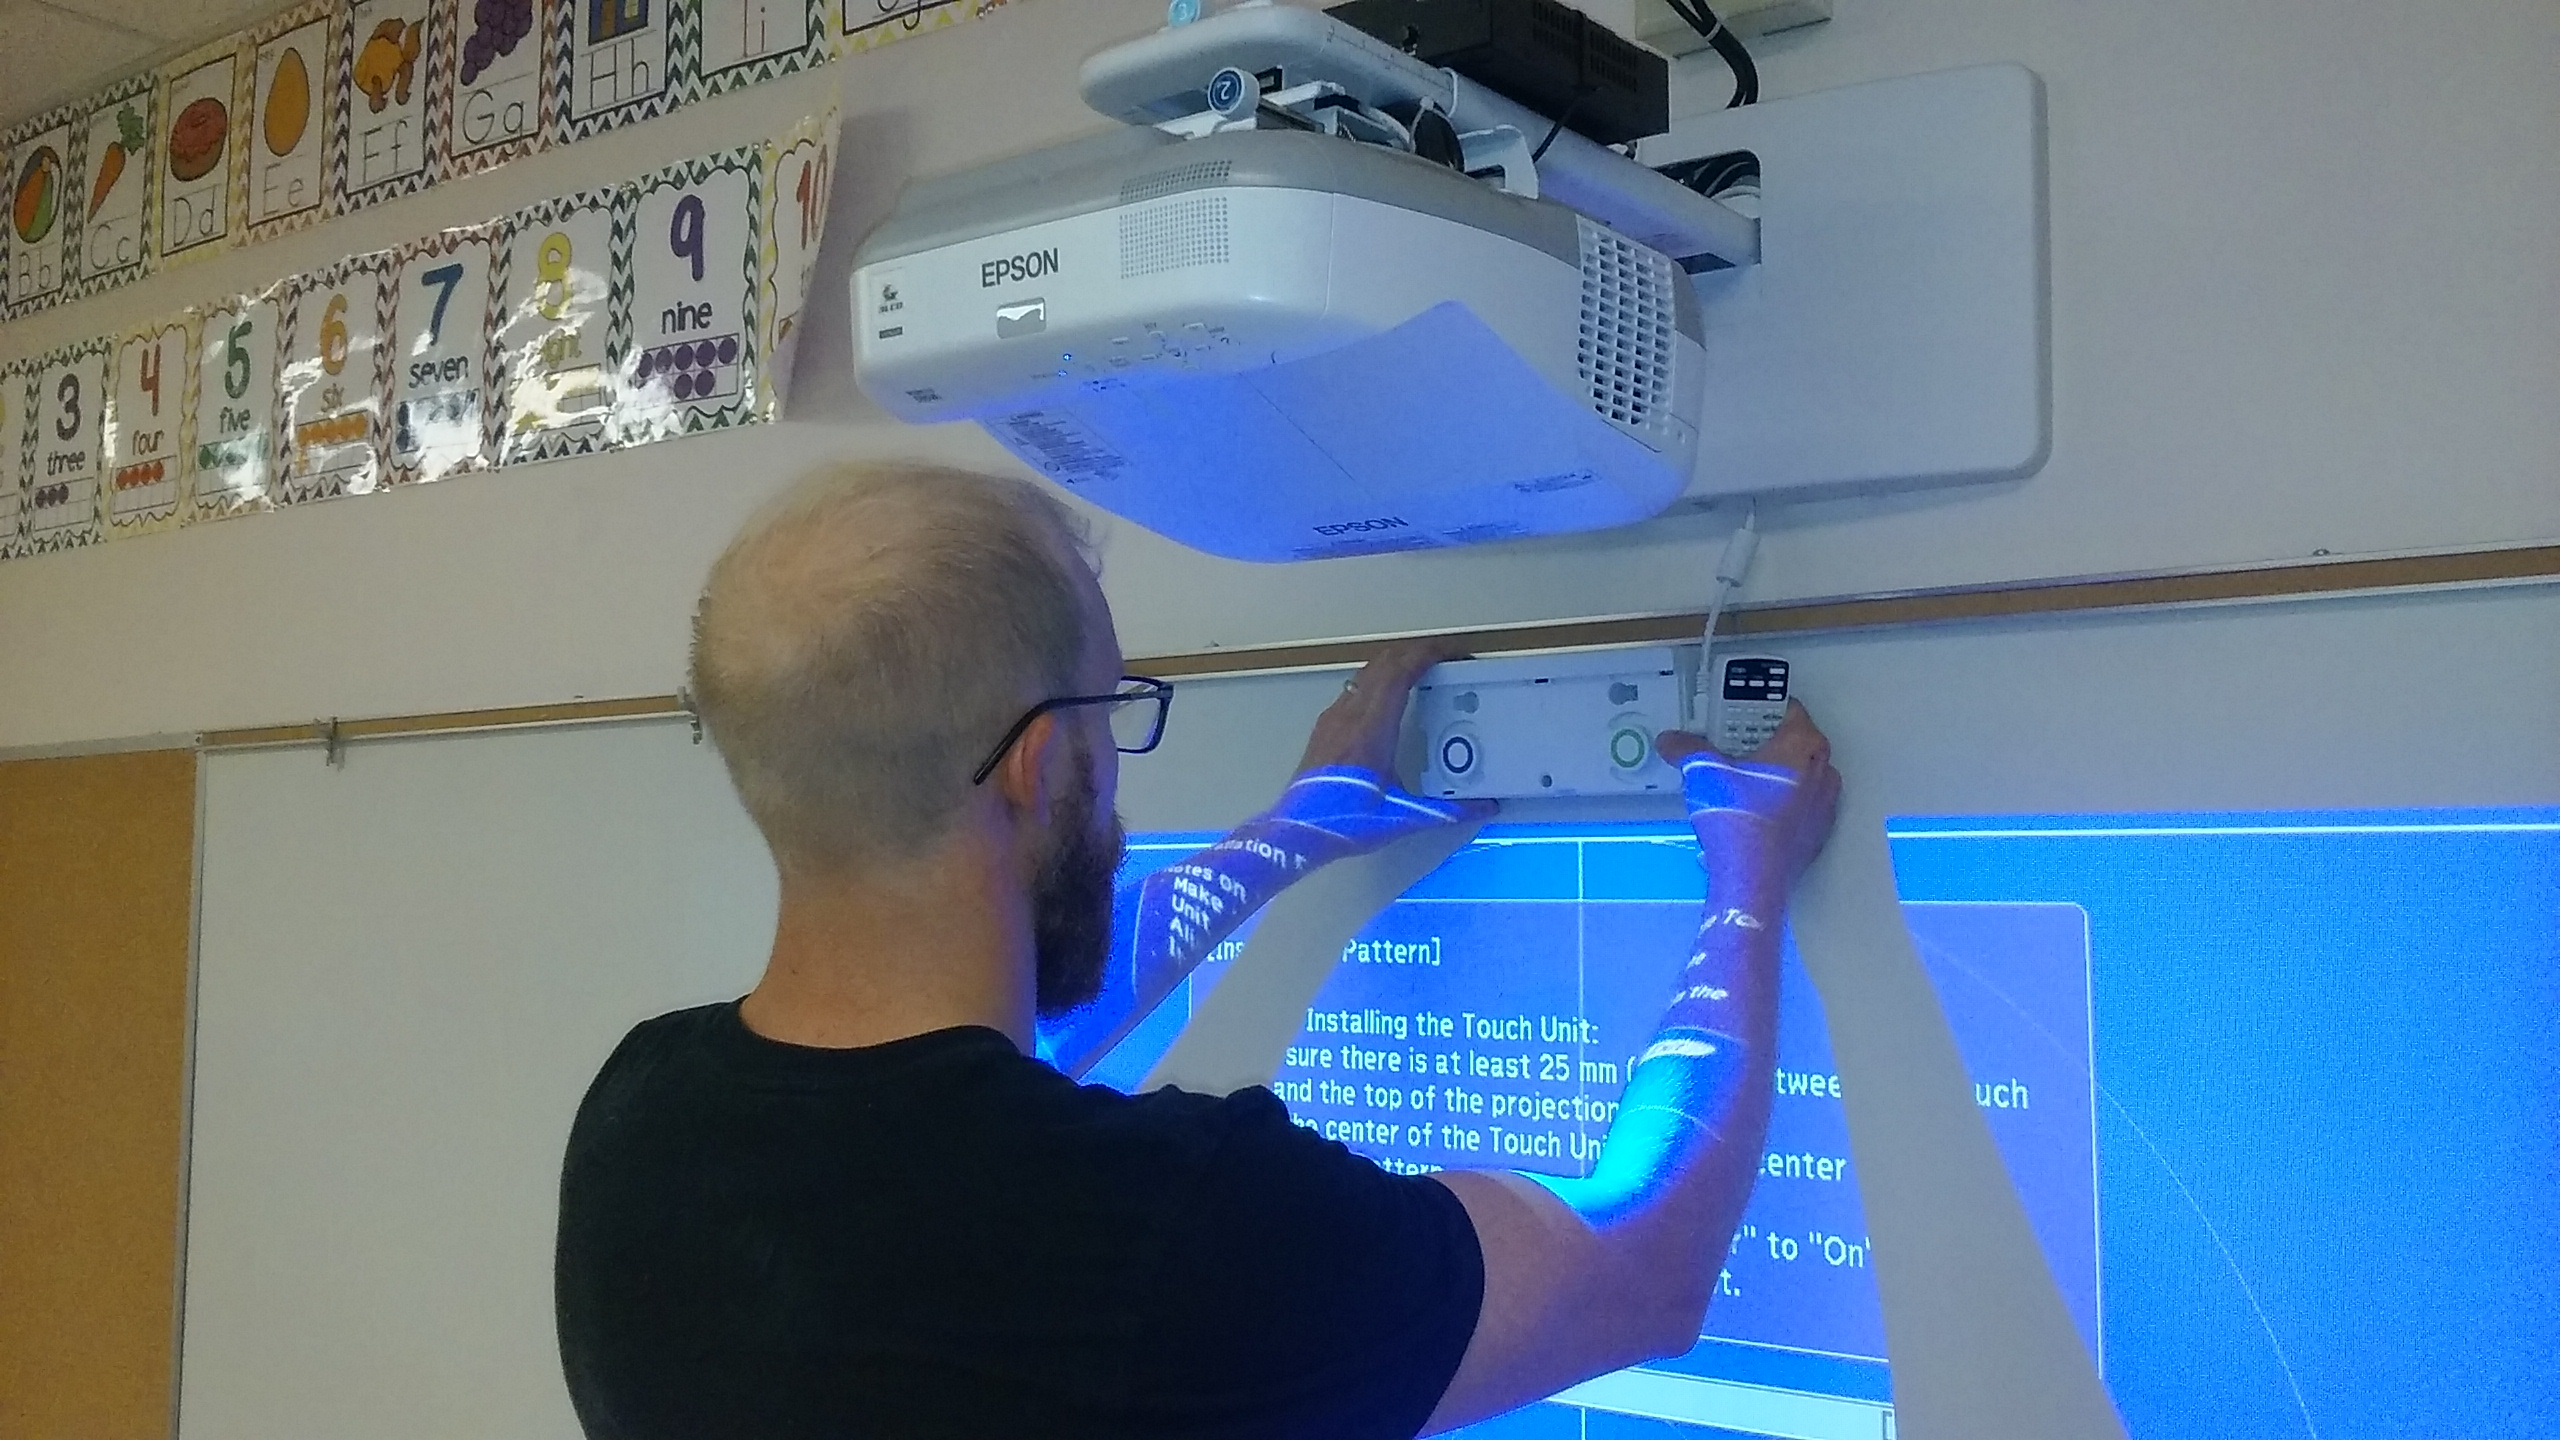 Technical Video Inc. installs the new Espson Brightlink 595Wi Interactive Projectors in Schalmont Schools